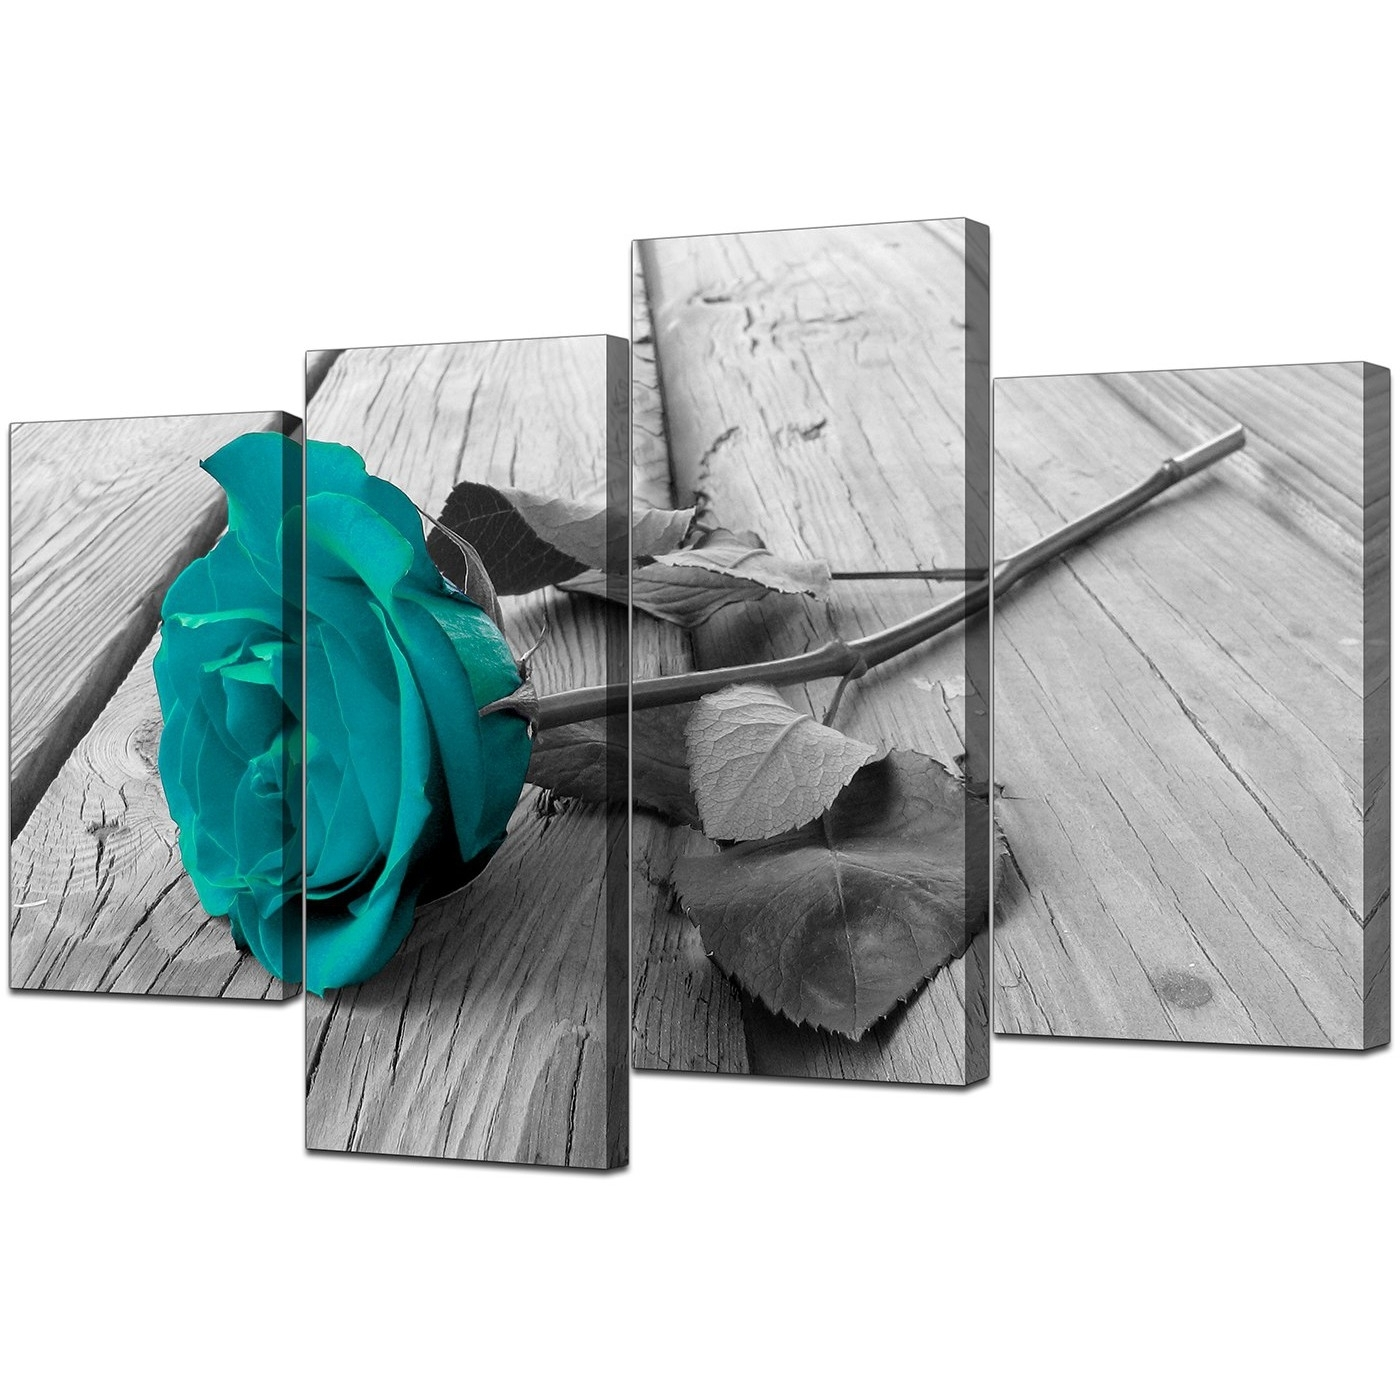 Canvas Prints Uk Of Teal Rose In Black & White For Your Bathroom Regarding Well Liked Teal Wall Art (View 4 of 15)